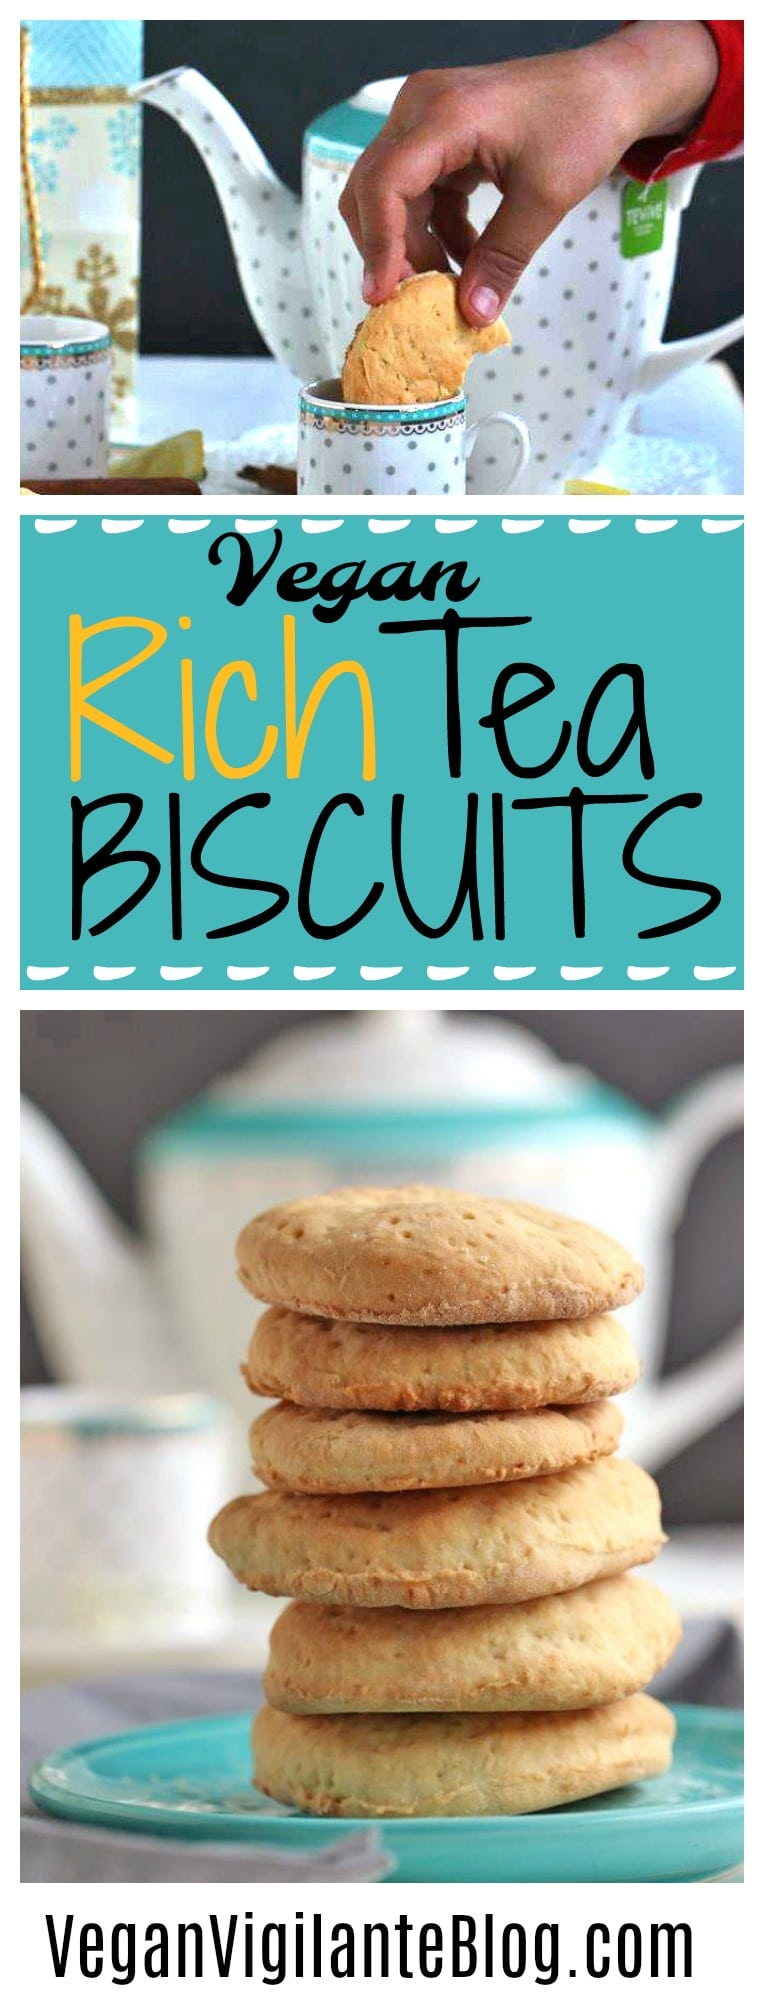 Rich Teac Biscuits